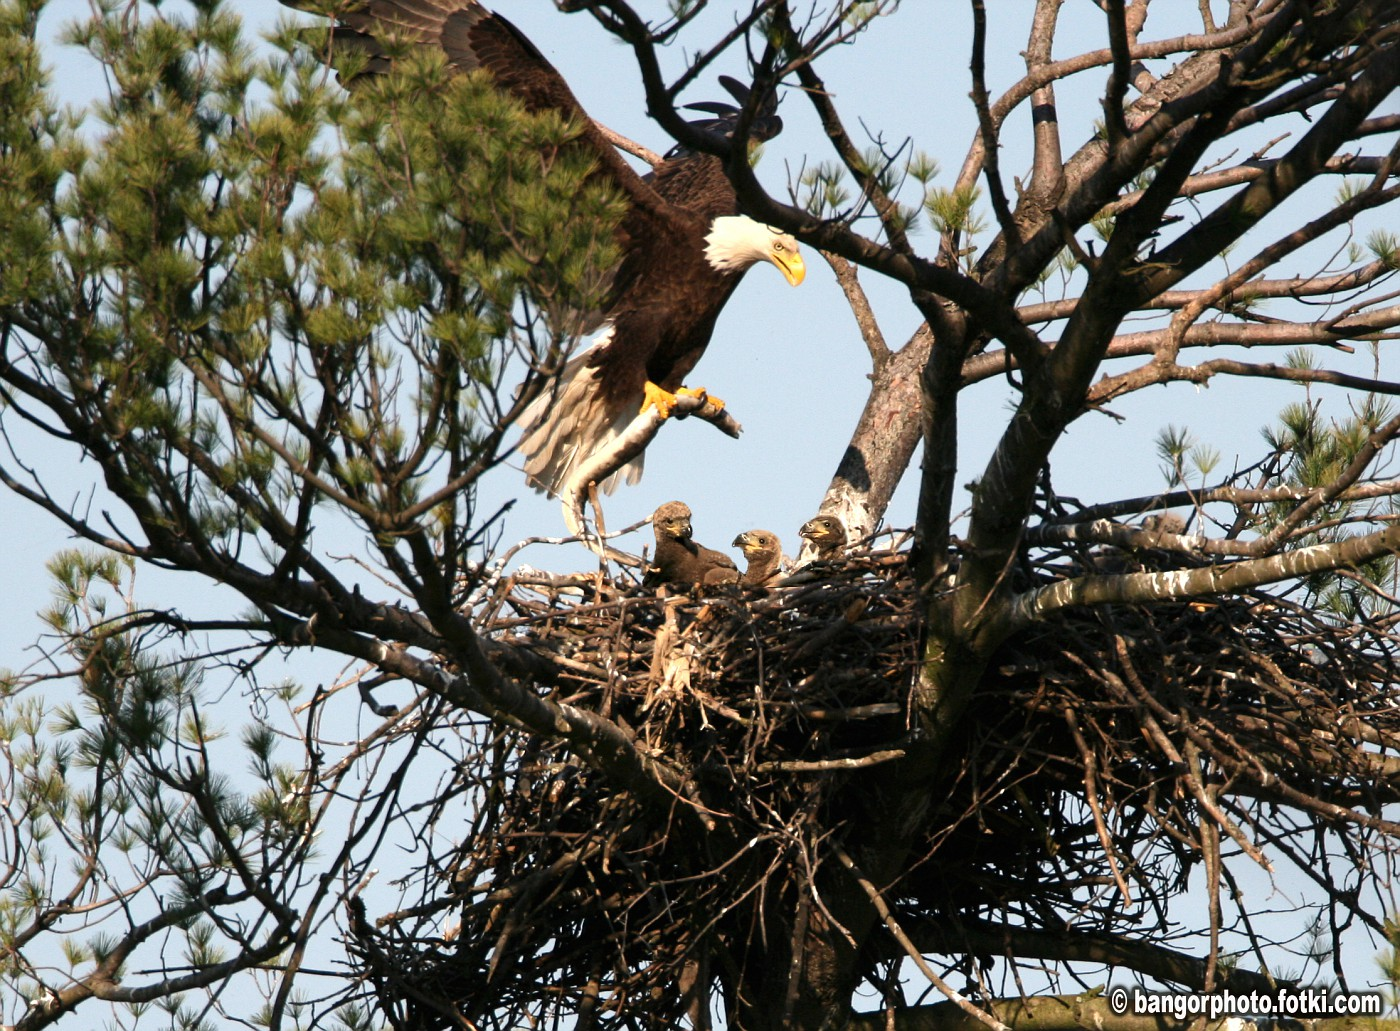 EDITED - Added Eaglets